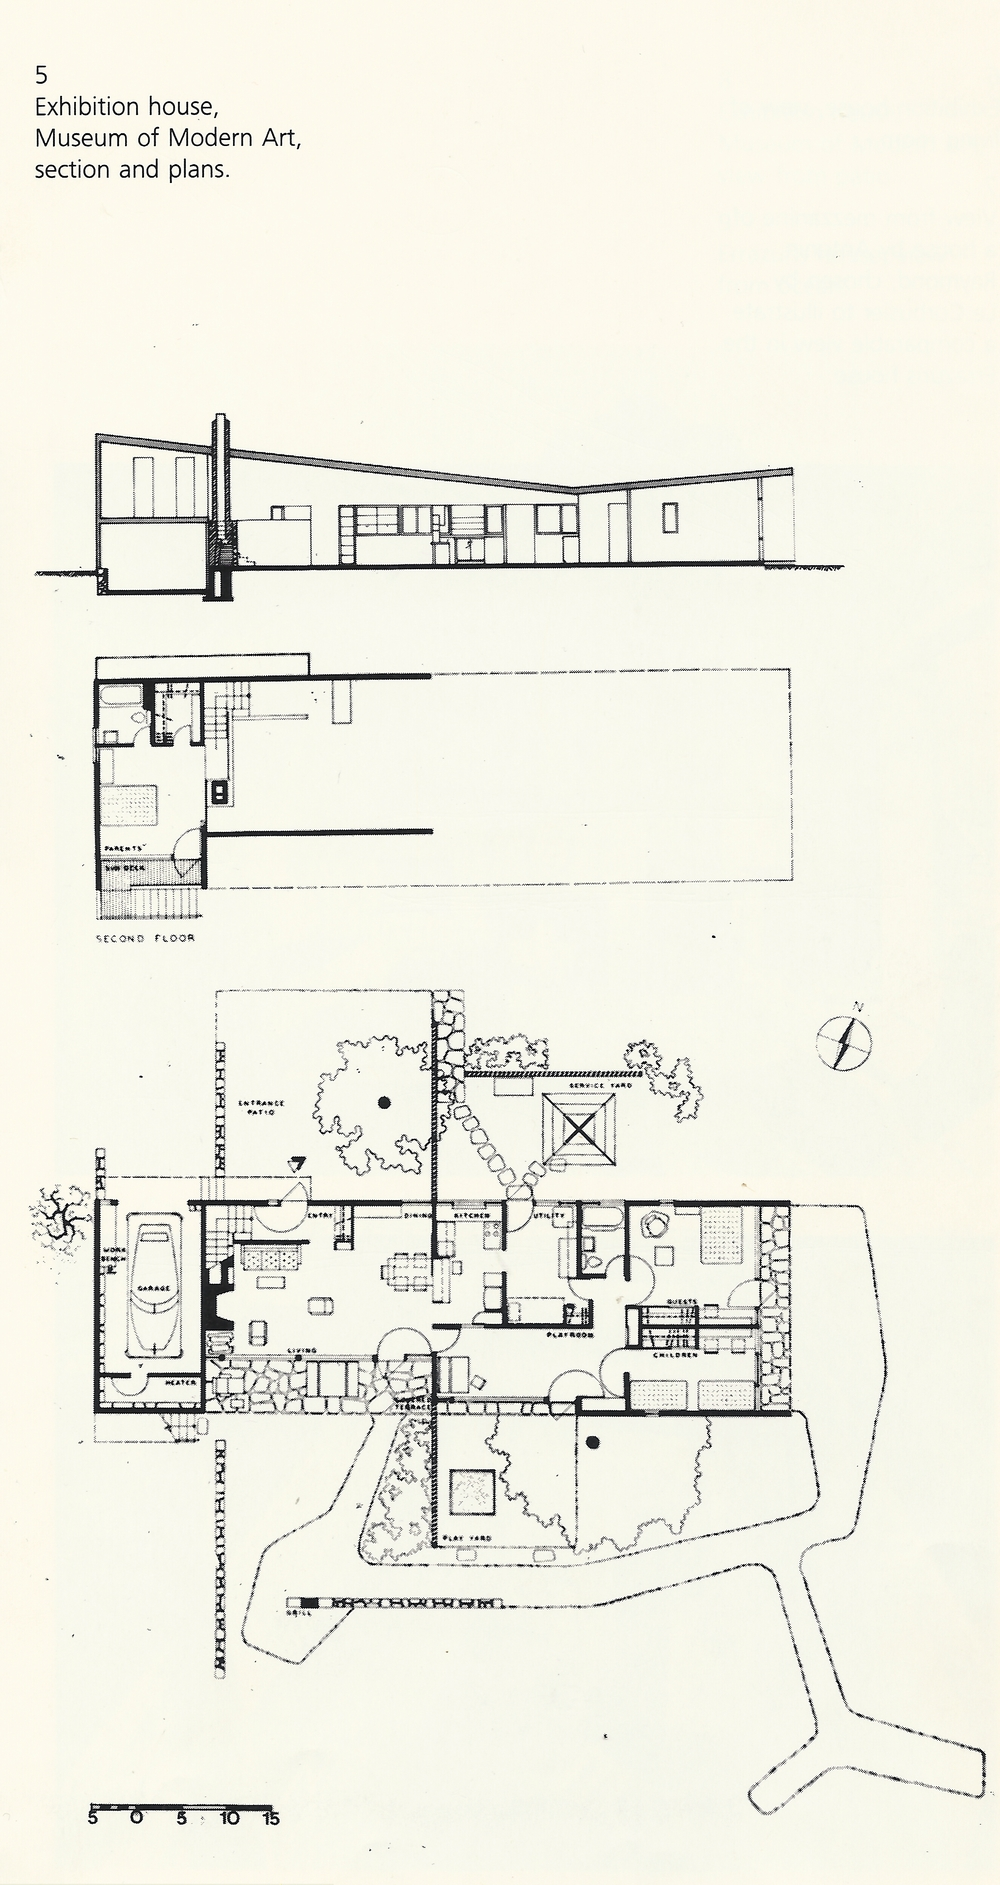 Breuer's exhibition house from The Decorated Diagram